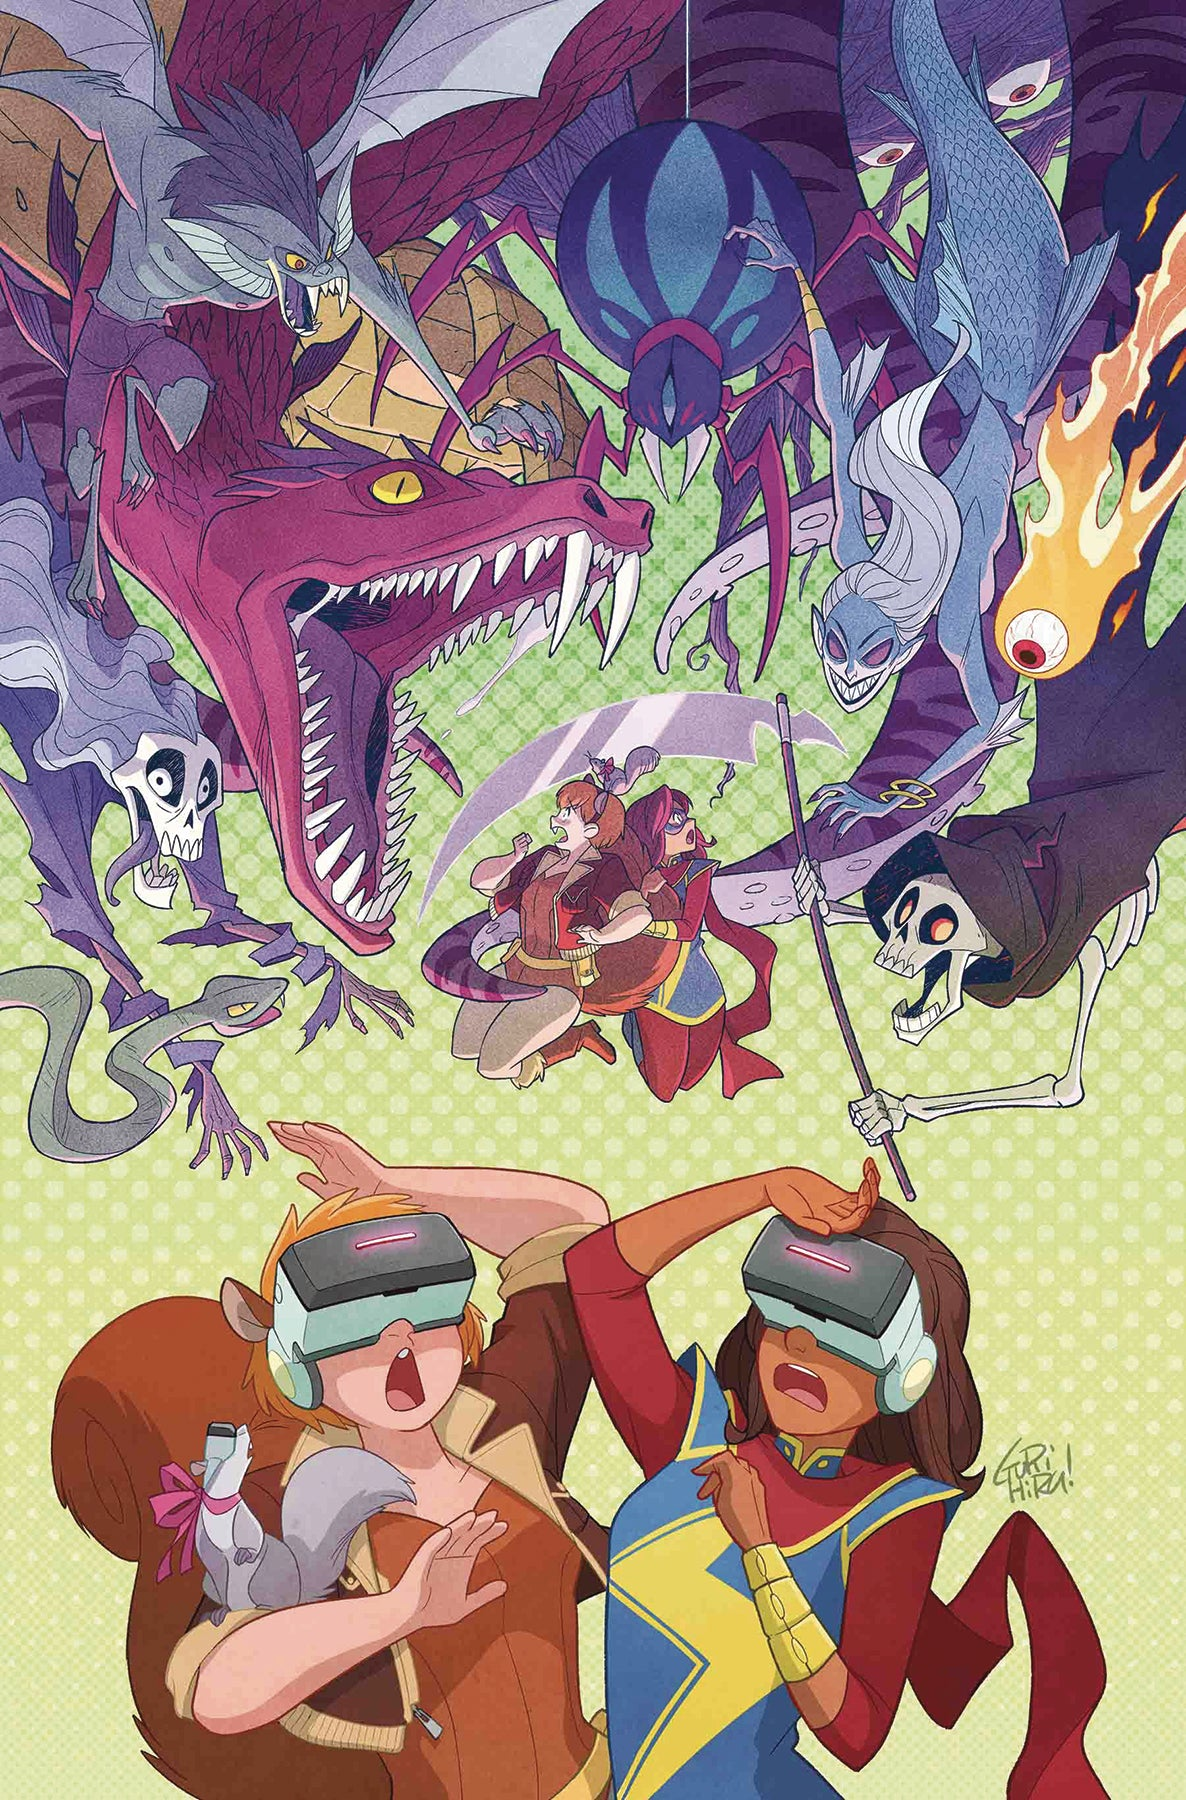 MARVEL RISING MS MARVEL SQUIRREL GIRL #1 | Game Master's Emporium (The New GME)